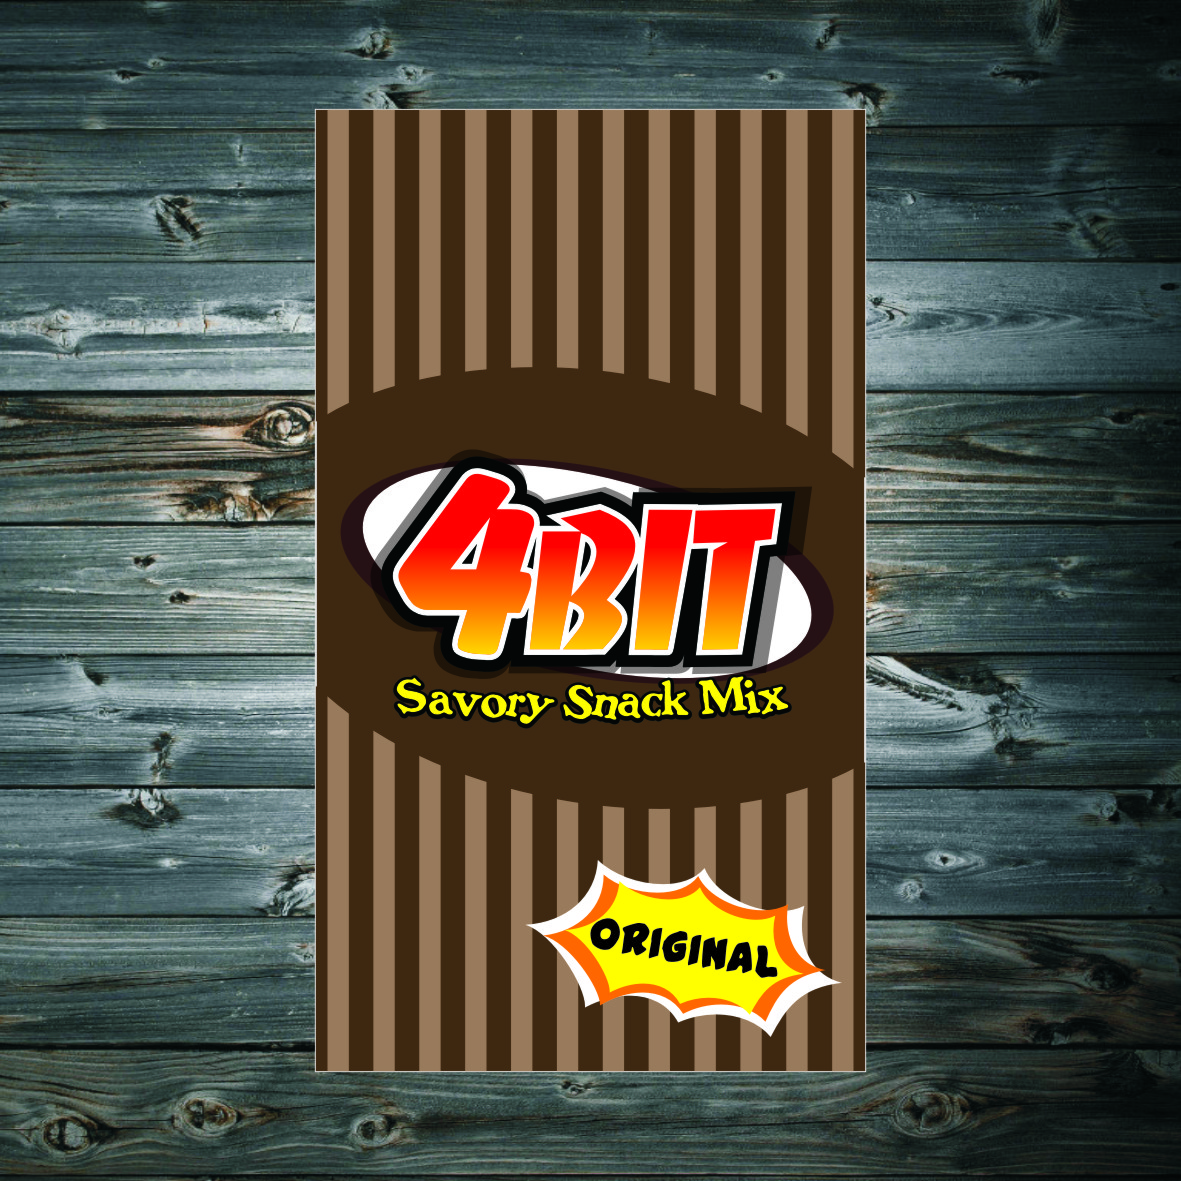 Print Design by arteo_design - Entry No. 70 in the Print Design Contest Fun Print Design (LABEL) 4 BIT SAVORY SNACK MIX - ORIGINAL.